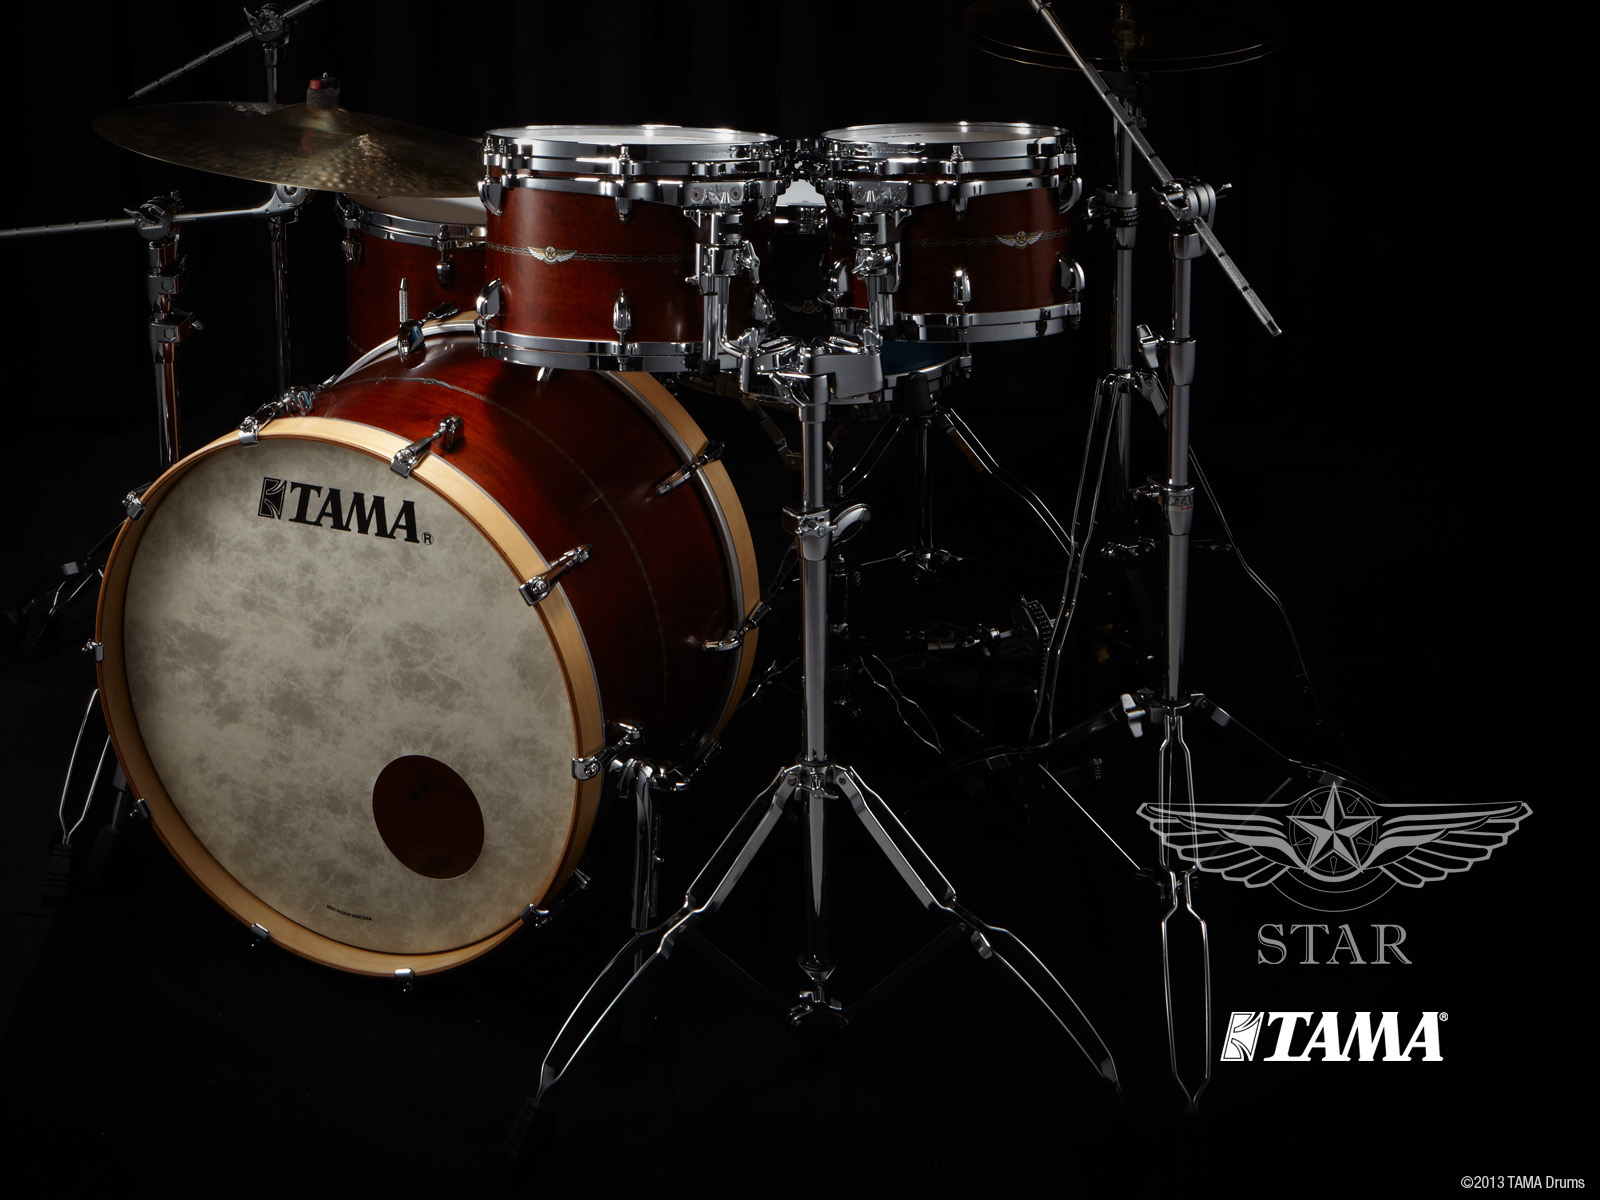 Drums Wallpapers: Tama Drums Wallpaper